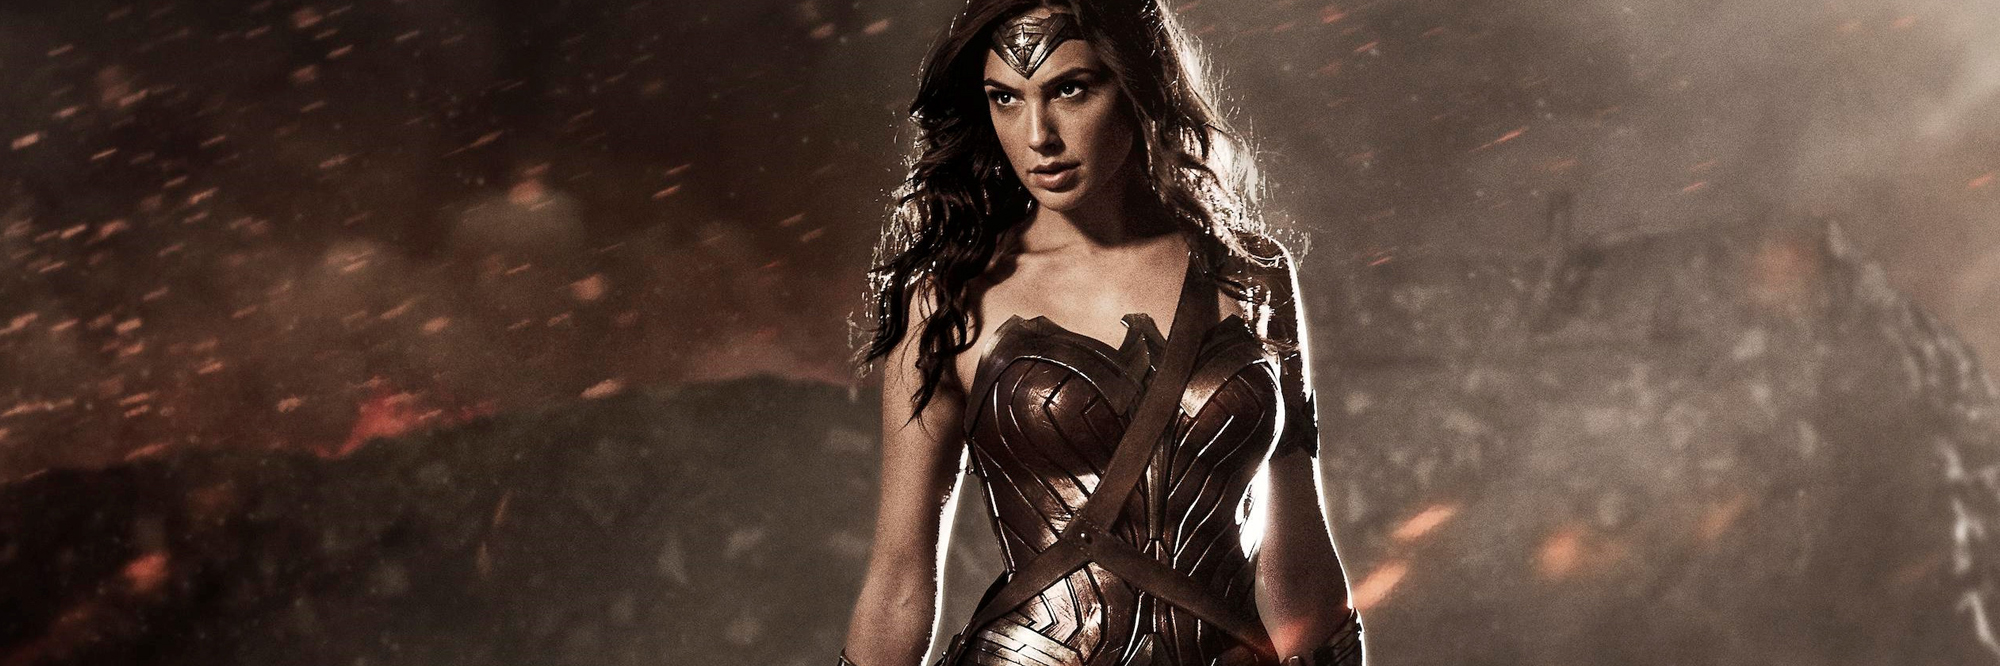 Wonder woman costume guide wonderwoman justice league movie wonder woman solutioingenieria Image collections